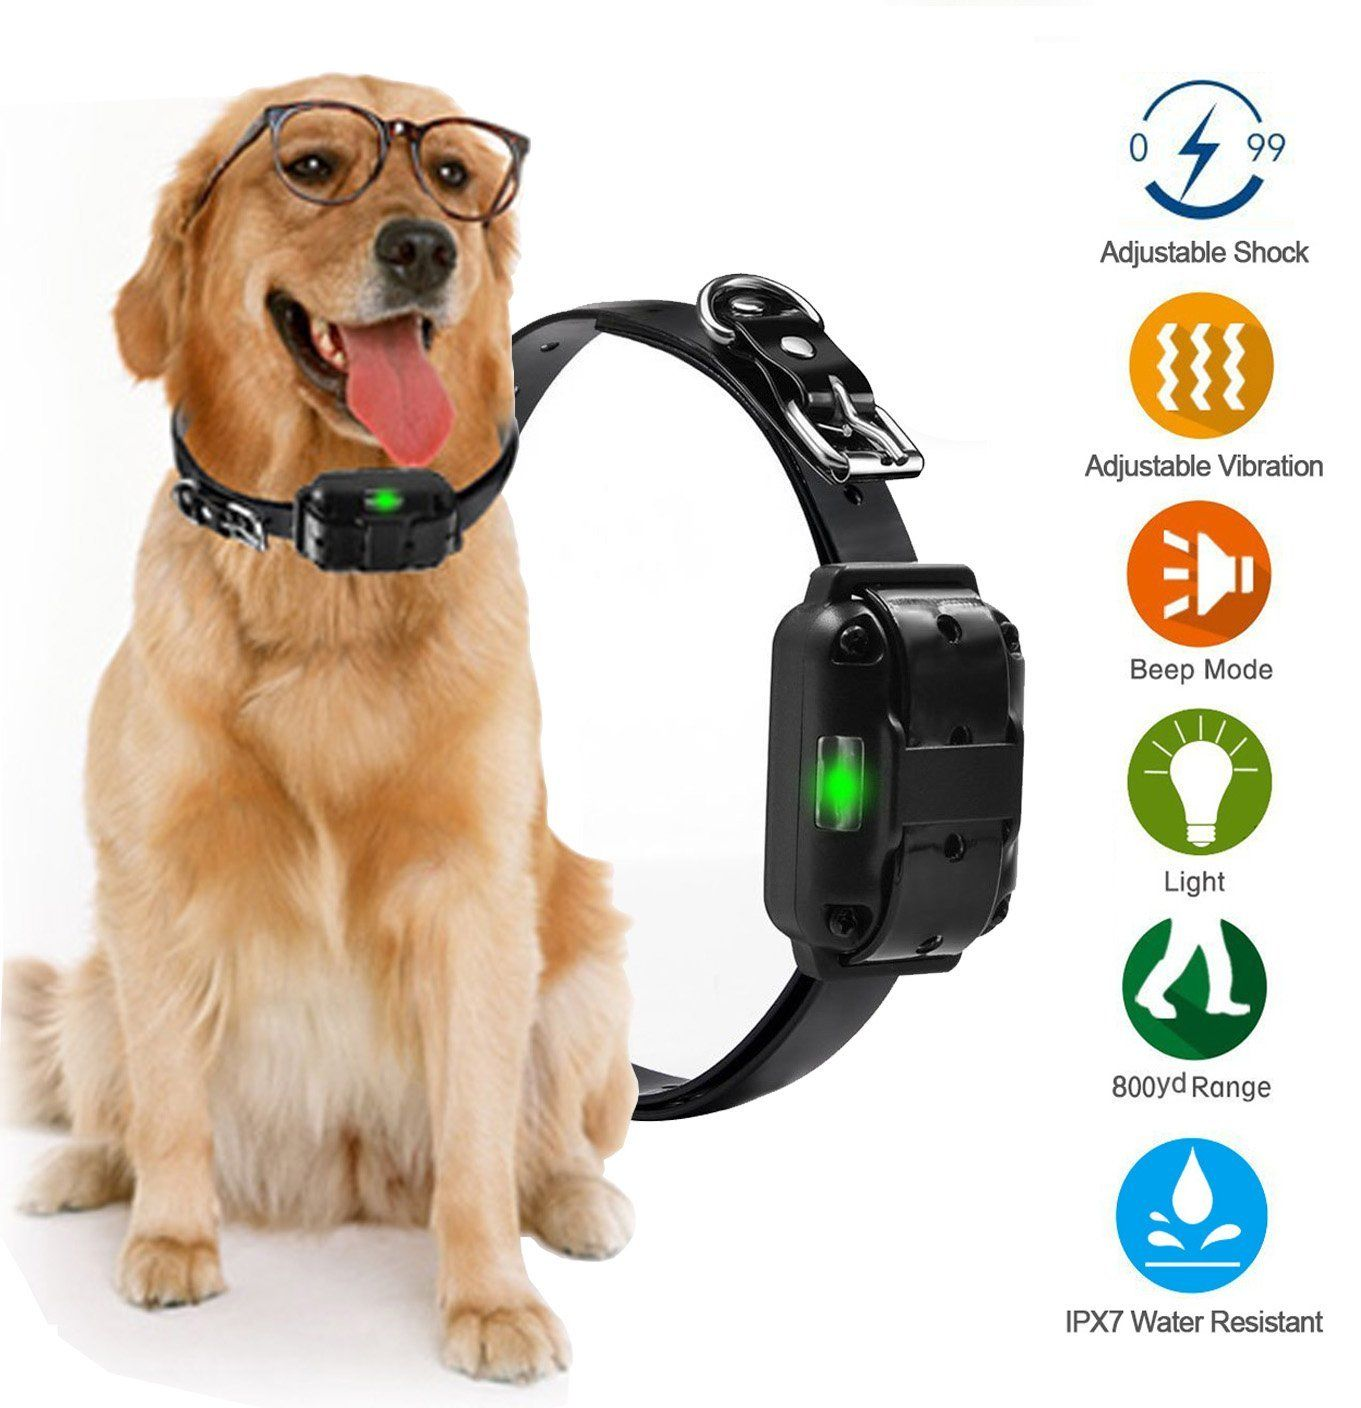 Additional Receiver Collar For Yipet Remote Dog Training Collar